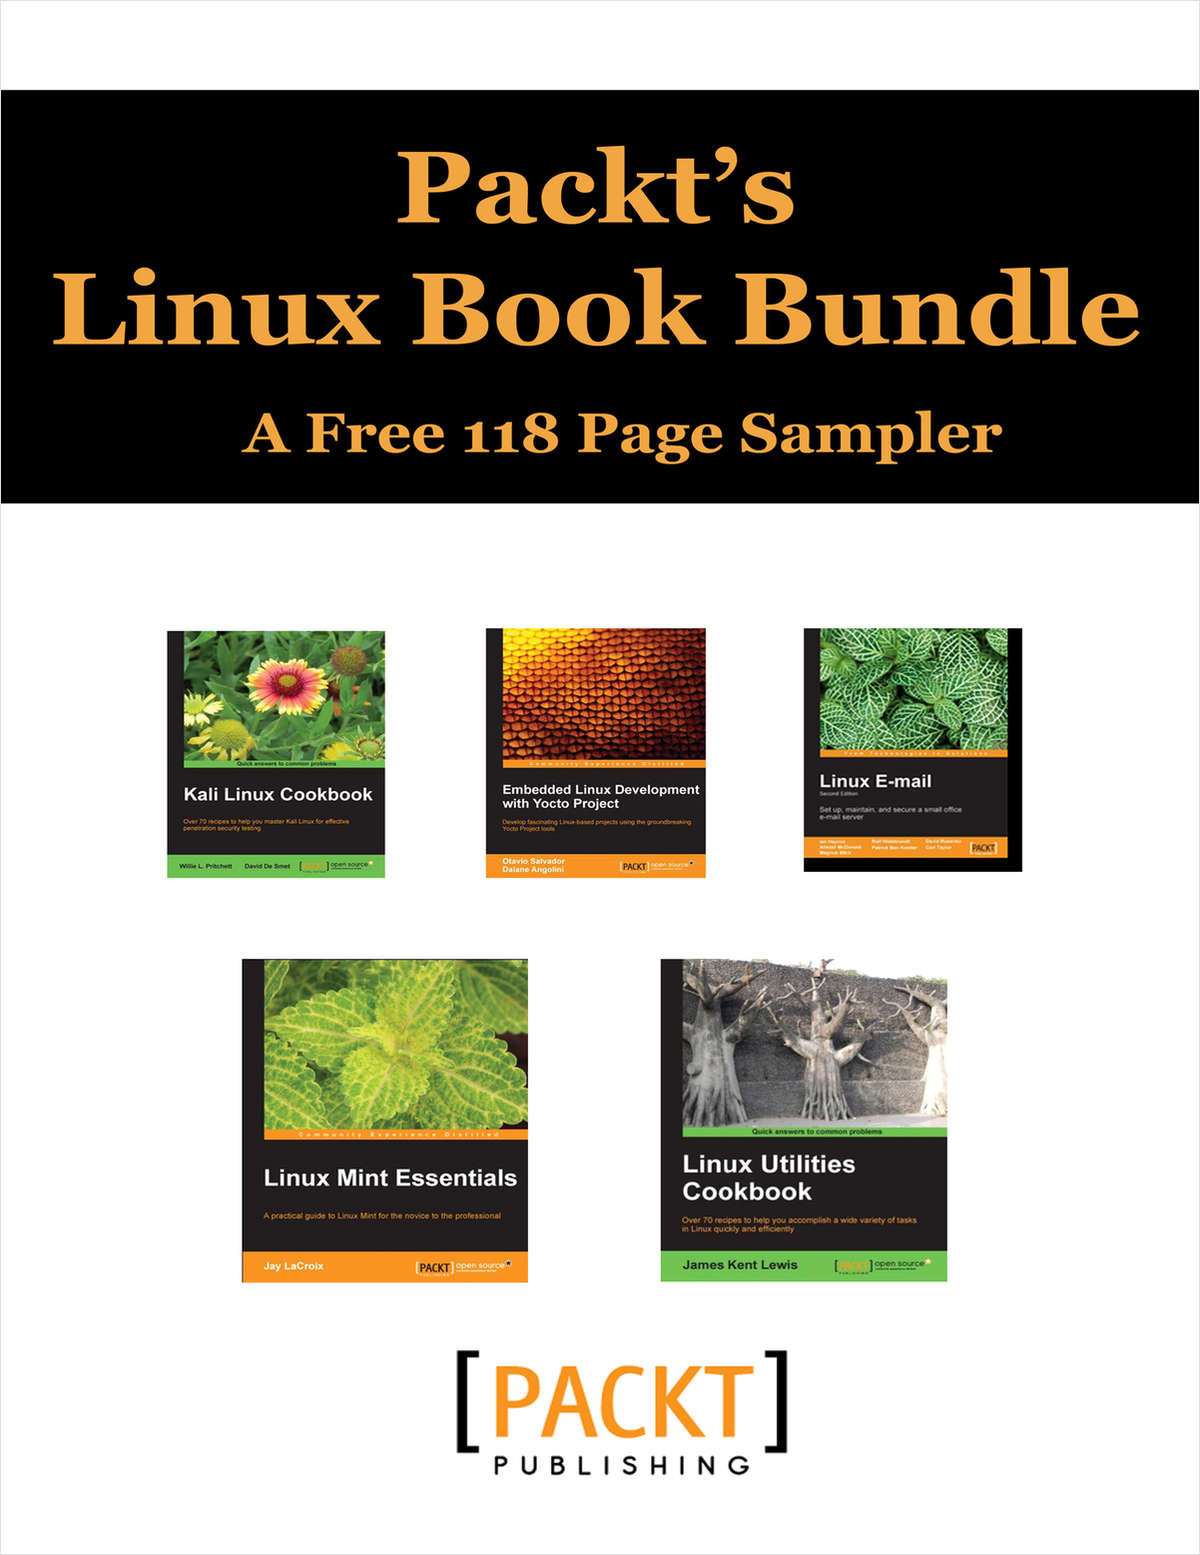 Packt's Linux Book Bundle -- A Free 118 Page Sampler